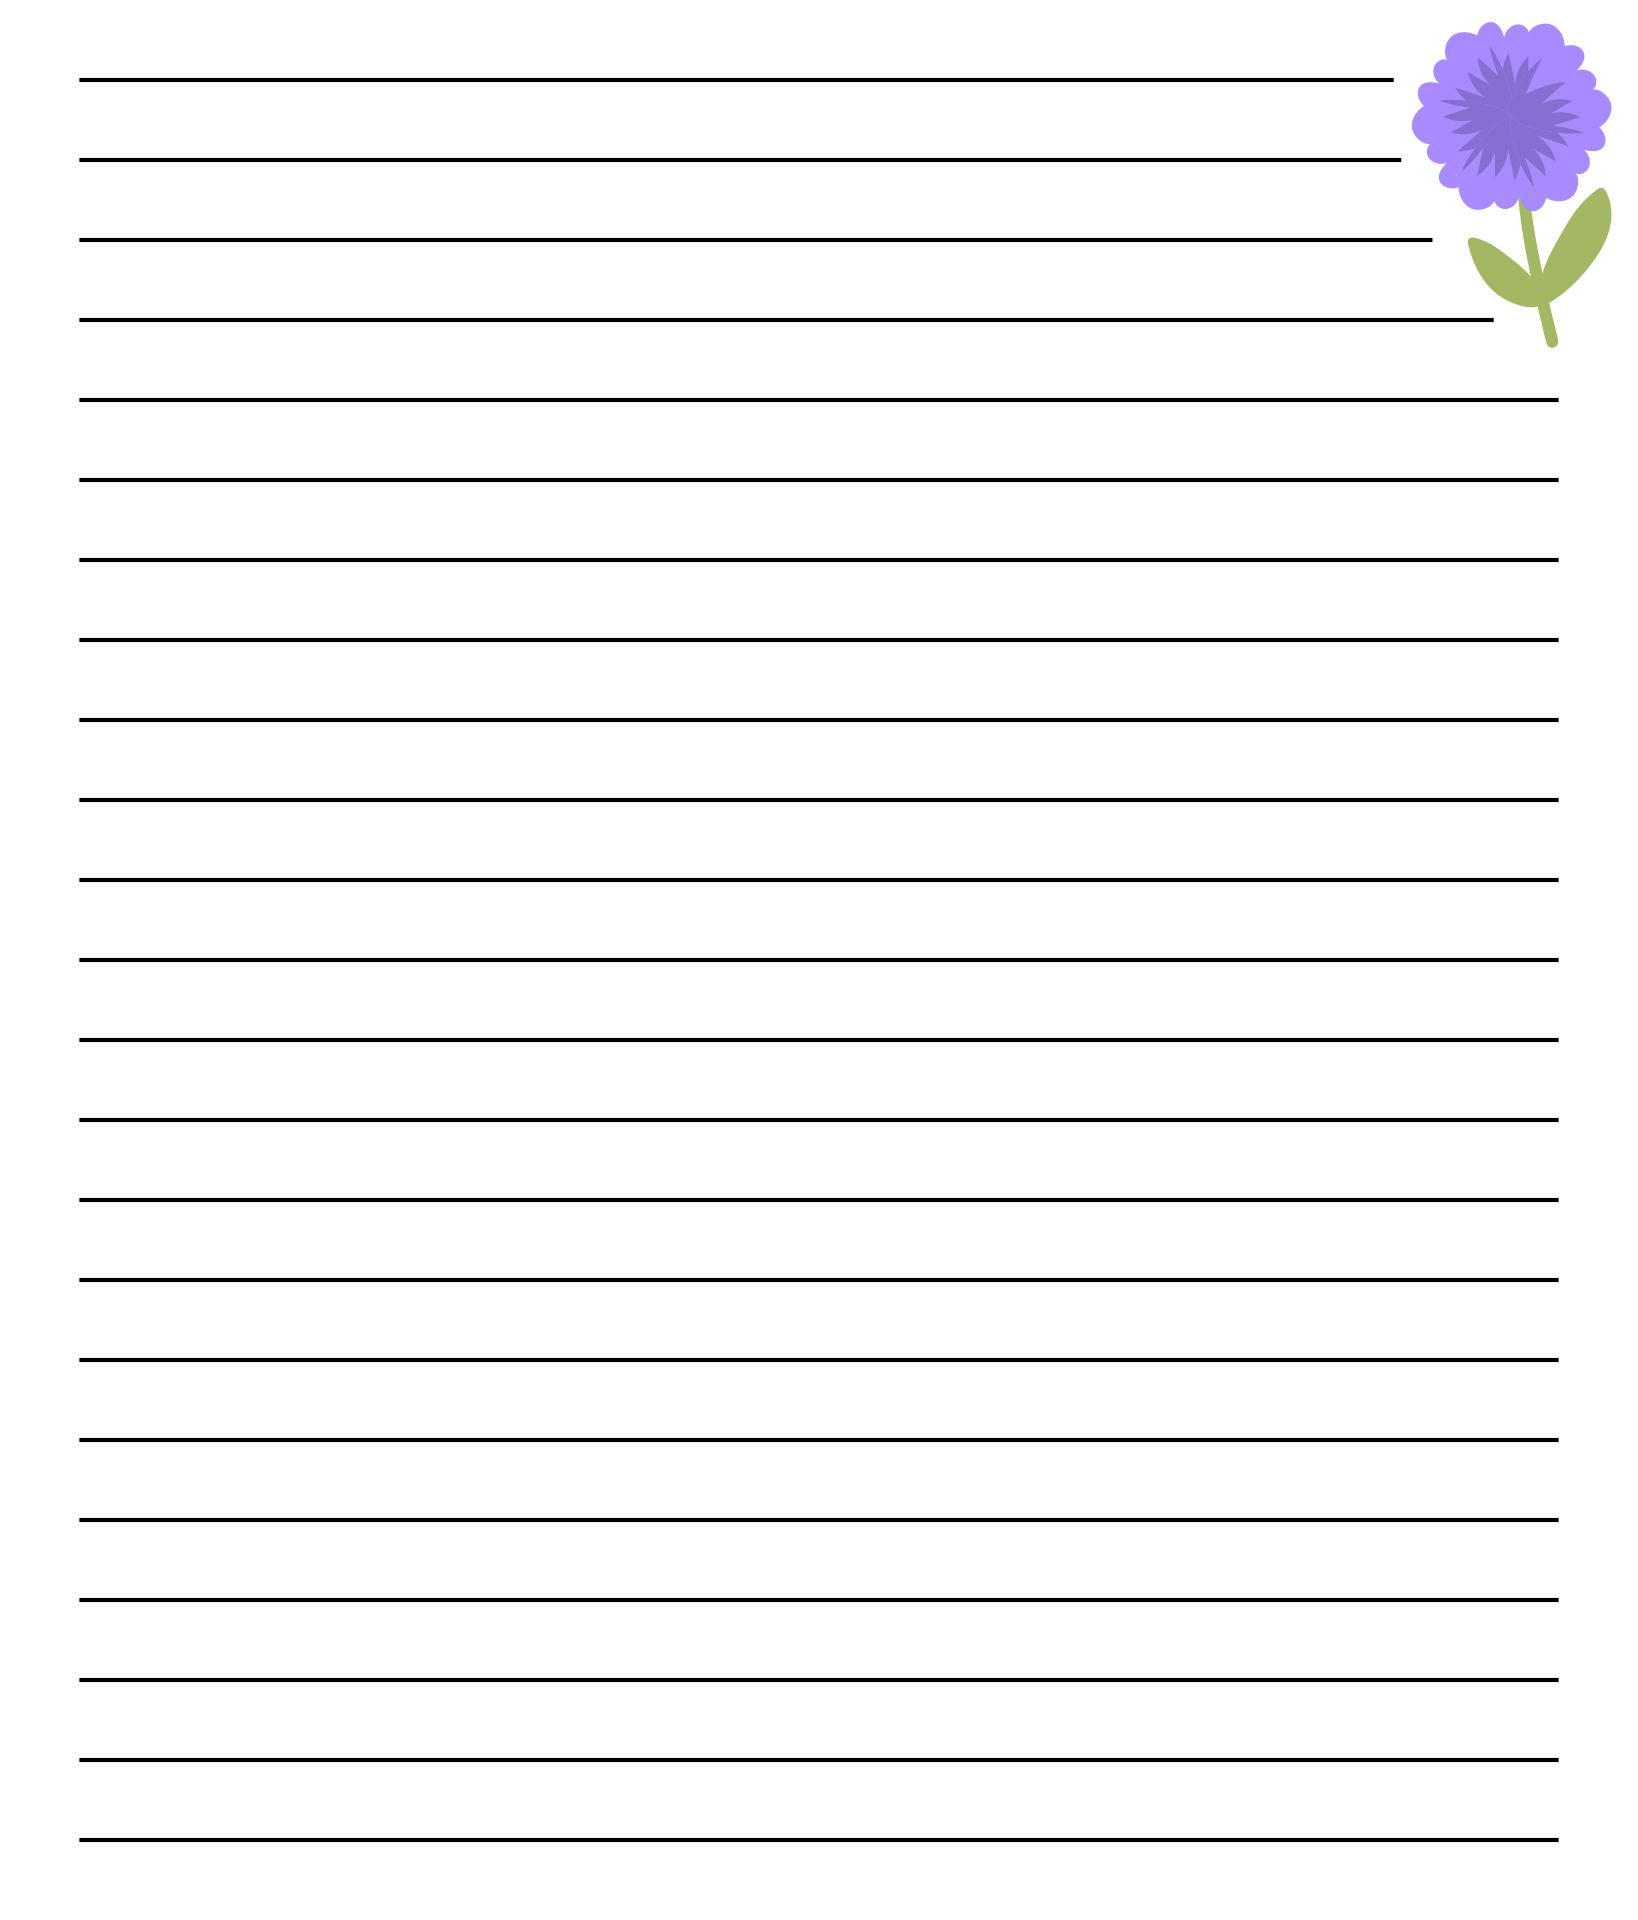 8 Images of Printable Lined Stationery